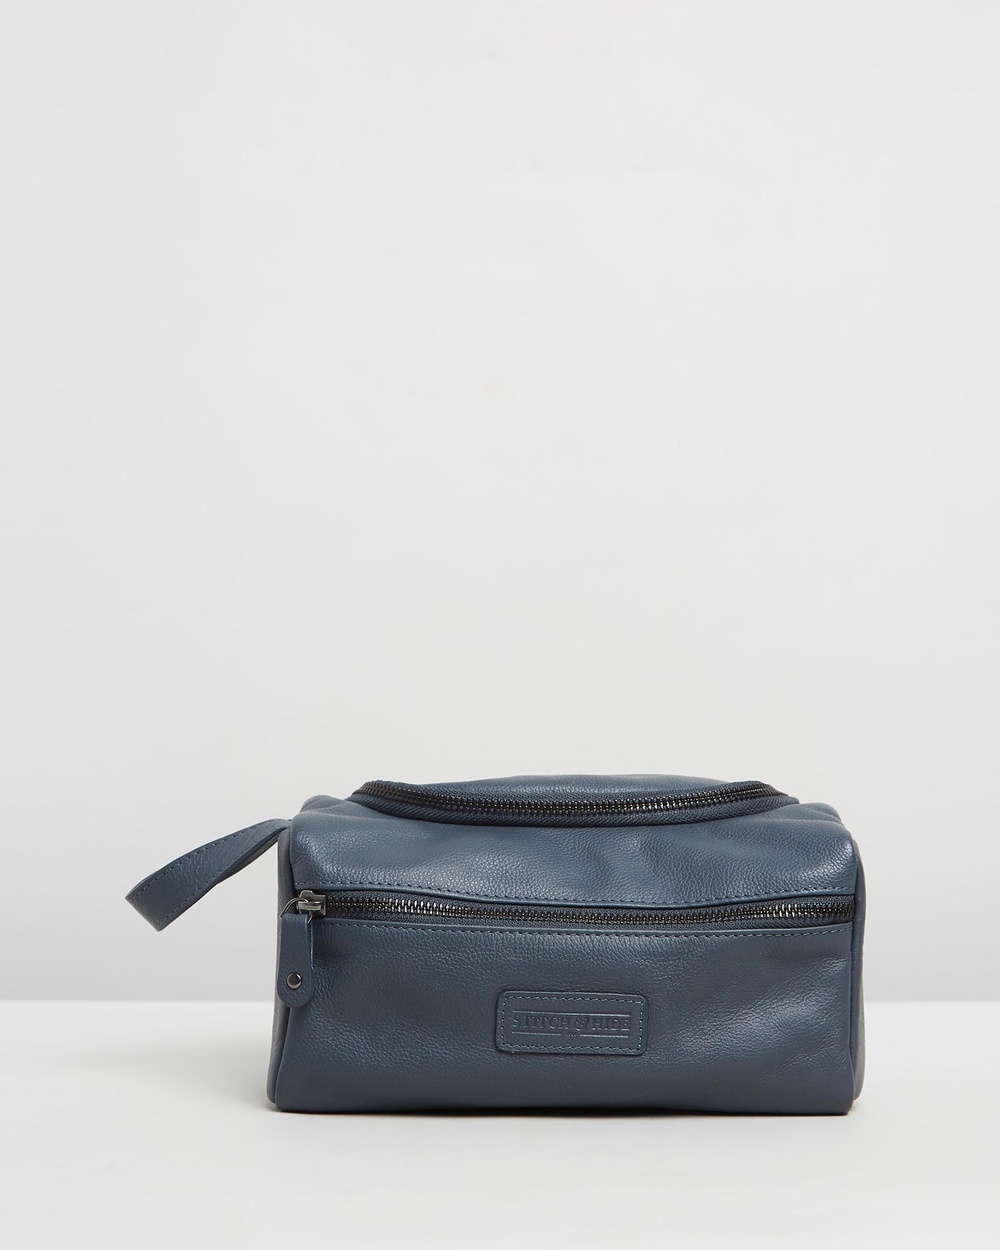 Stitch & Hide Jett Toiletry Bag Travel and Luggage Deep Sea